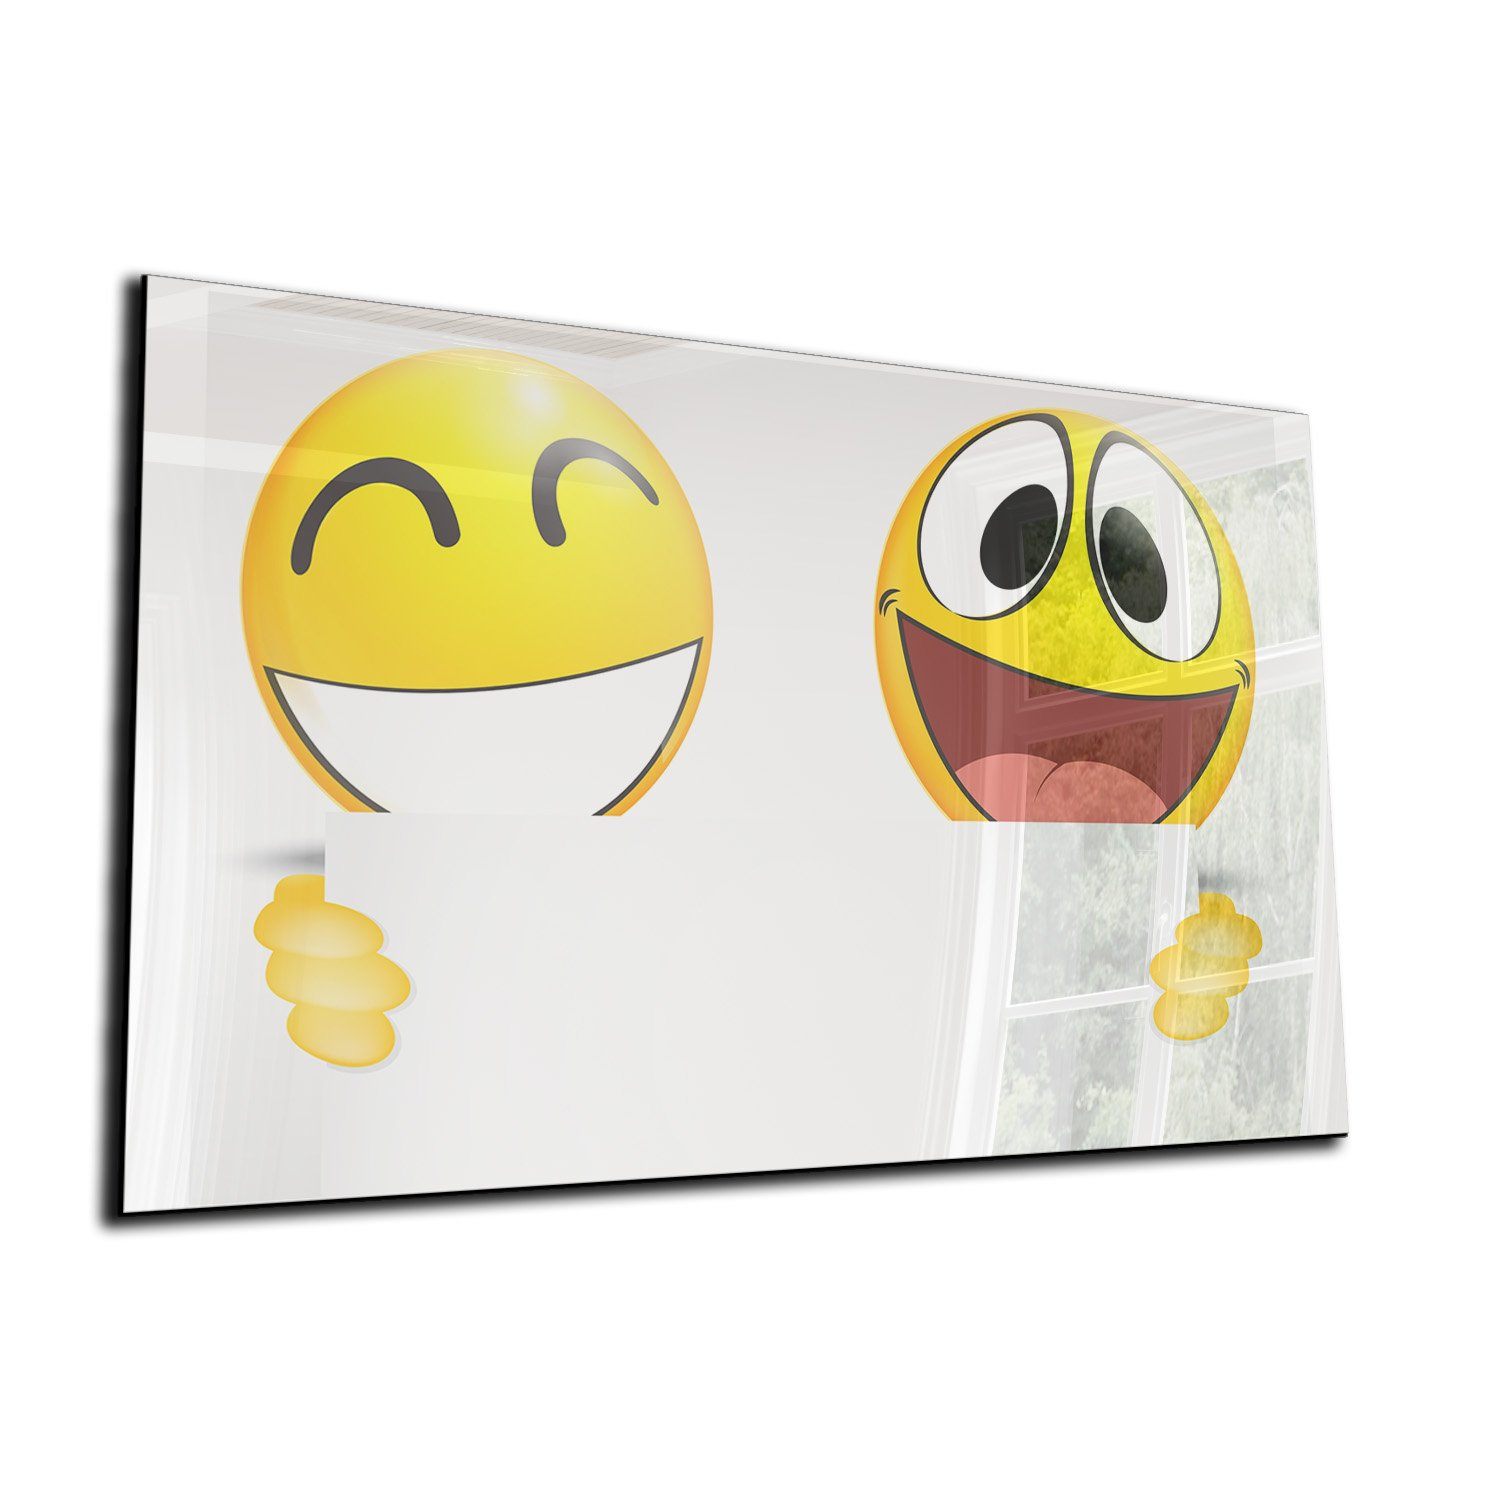 Deko 110x65 Magnetic Whiteboard Magnetic Glass Memo Board Magnetic Glass Board Boards Board Memo Board Tempered Glass, High Gloss Phone Cover Case – Smileys Yellow